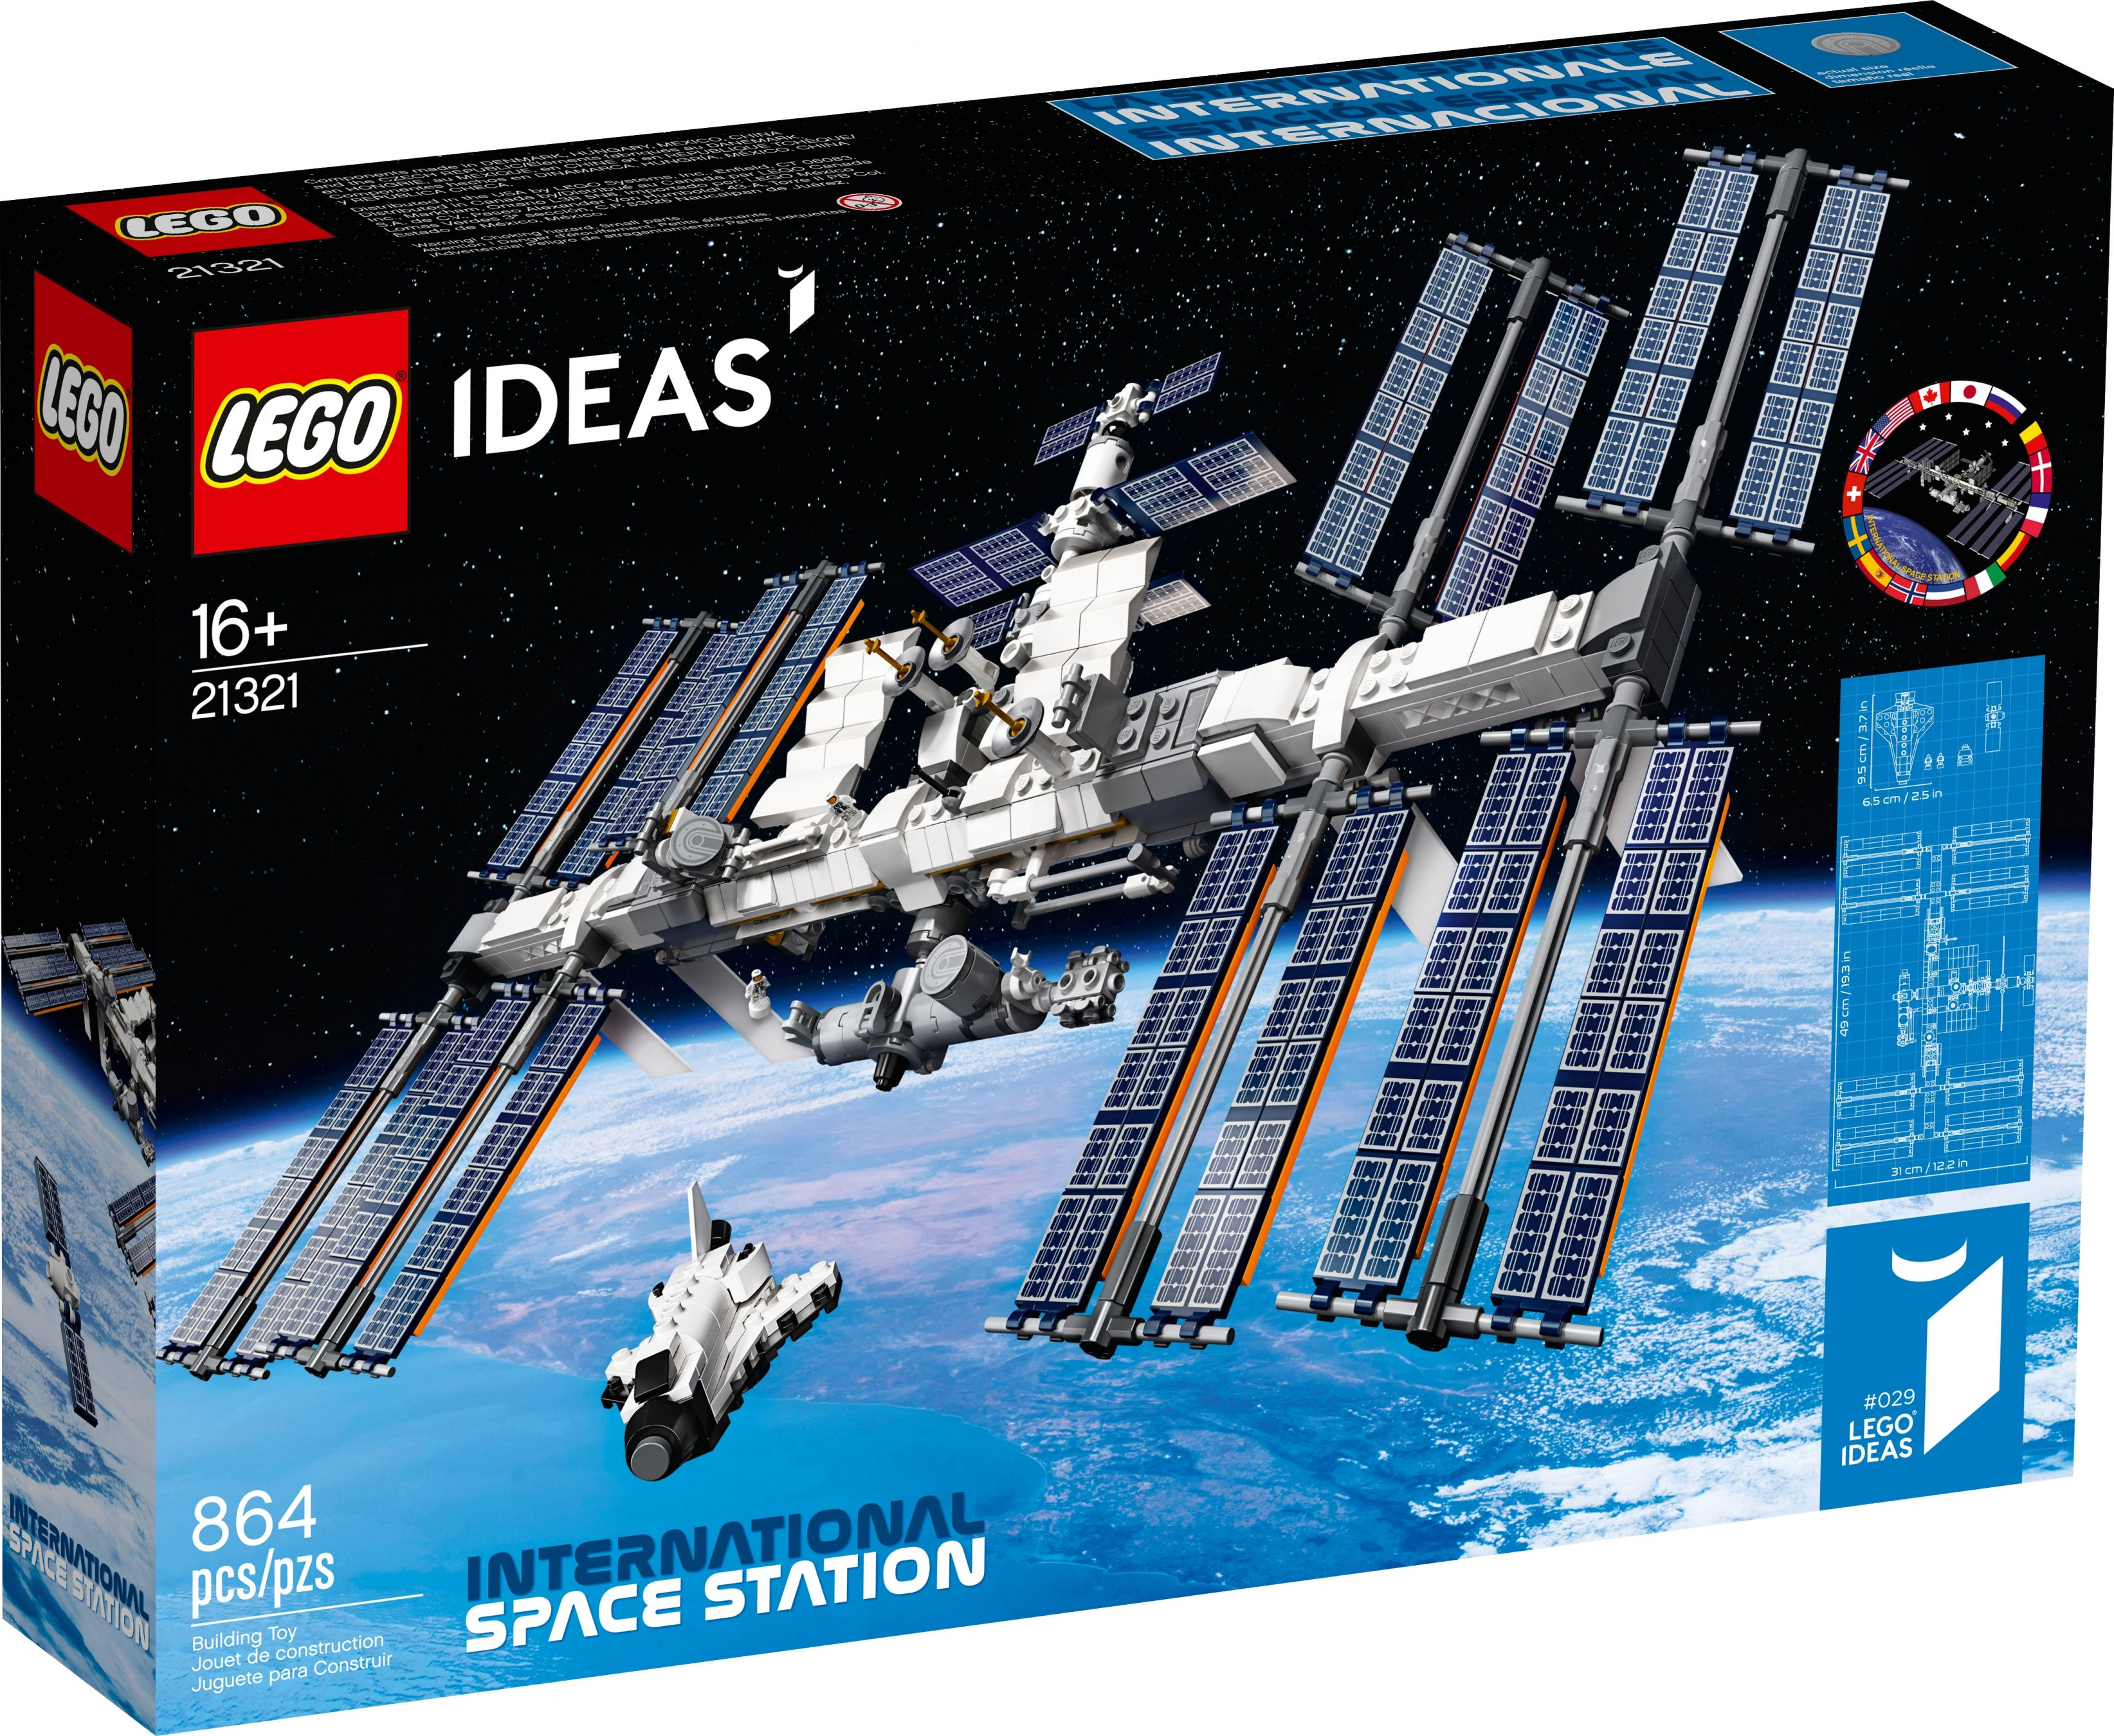 LEGO Ideas 21321 Internationale Raumstation LEGO_21321_alt1.jpg